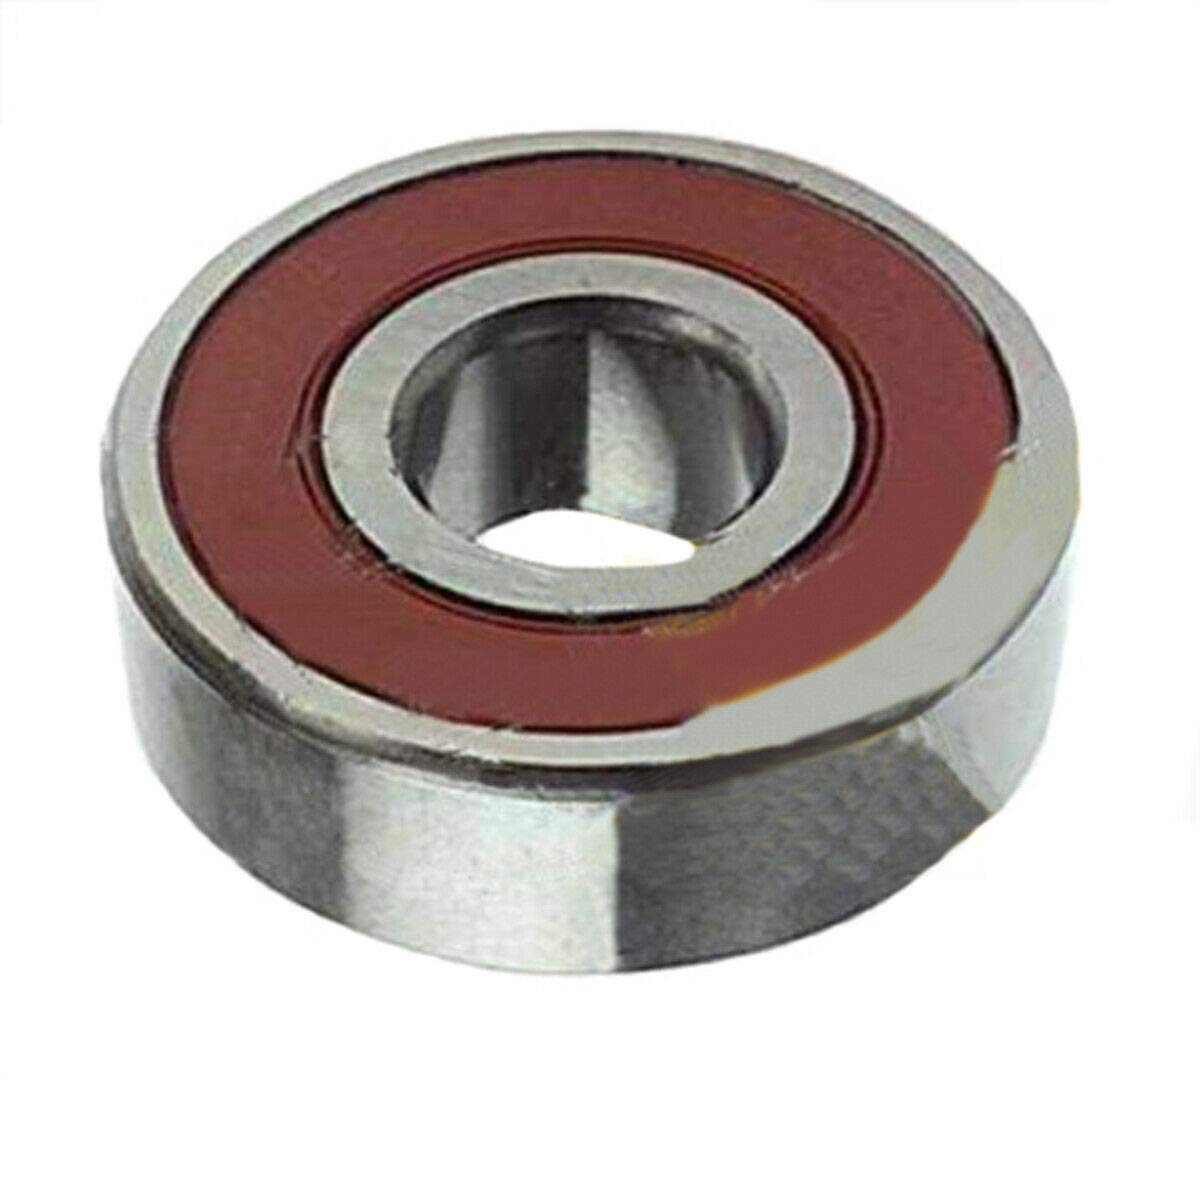 Electrical Roller Bearing Fit Hitachi Mitsubishi 15mm X 42mm X 13mm 6302-2rs